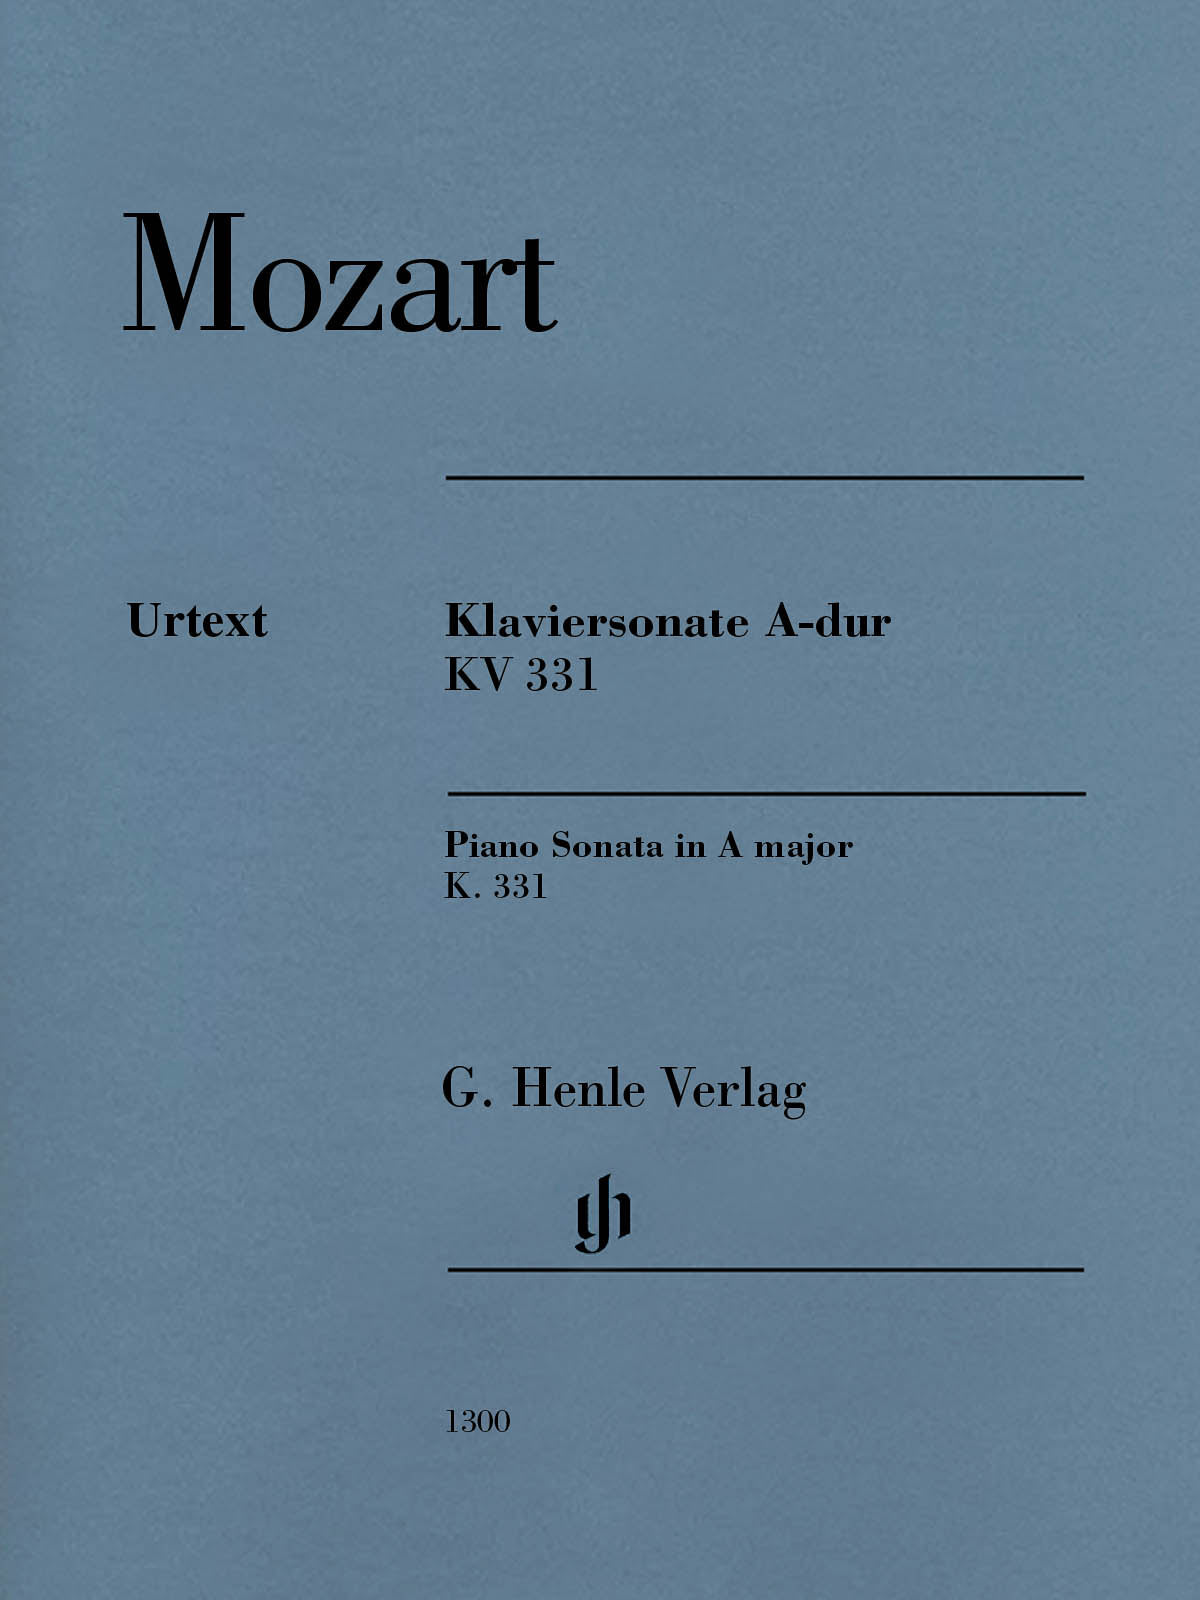 Mozart: Piano Sonata in A Major, K. 331 (300i)